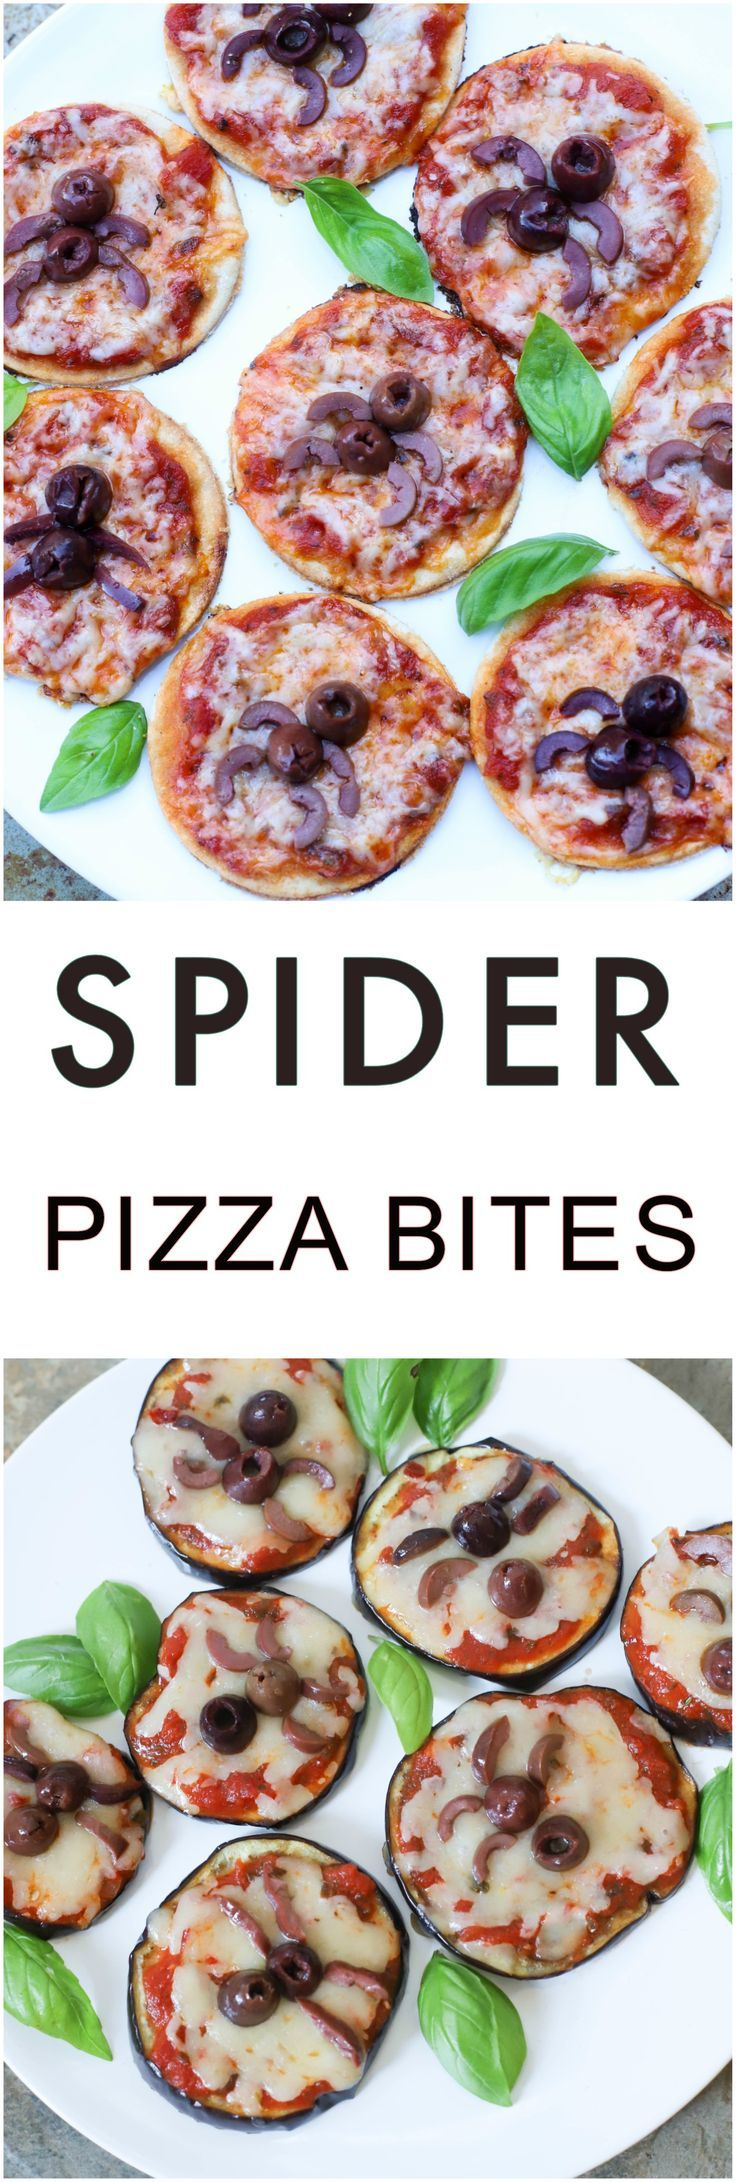 Spider Pizza Bites are simple Halloween-themed appetizers great for both adults and kids. Requires very little ingredients & quick! #halloween